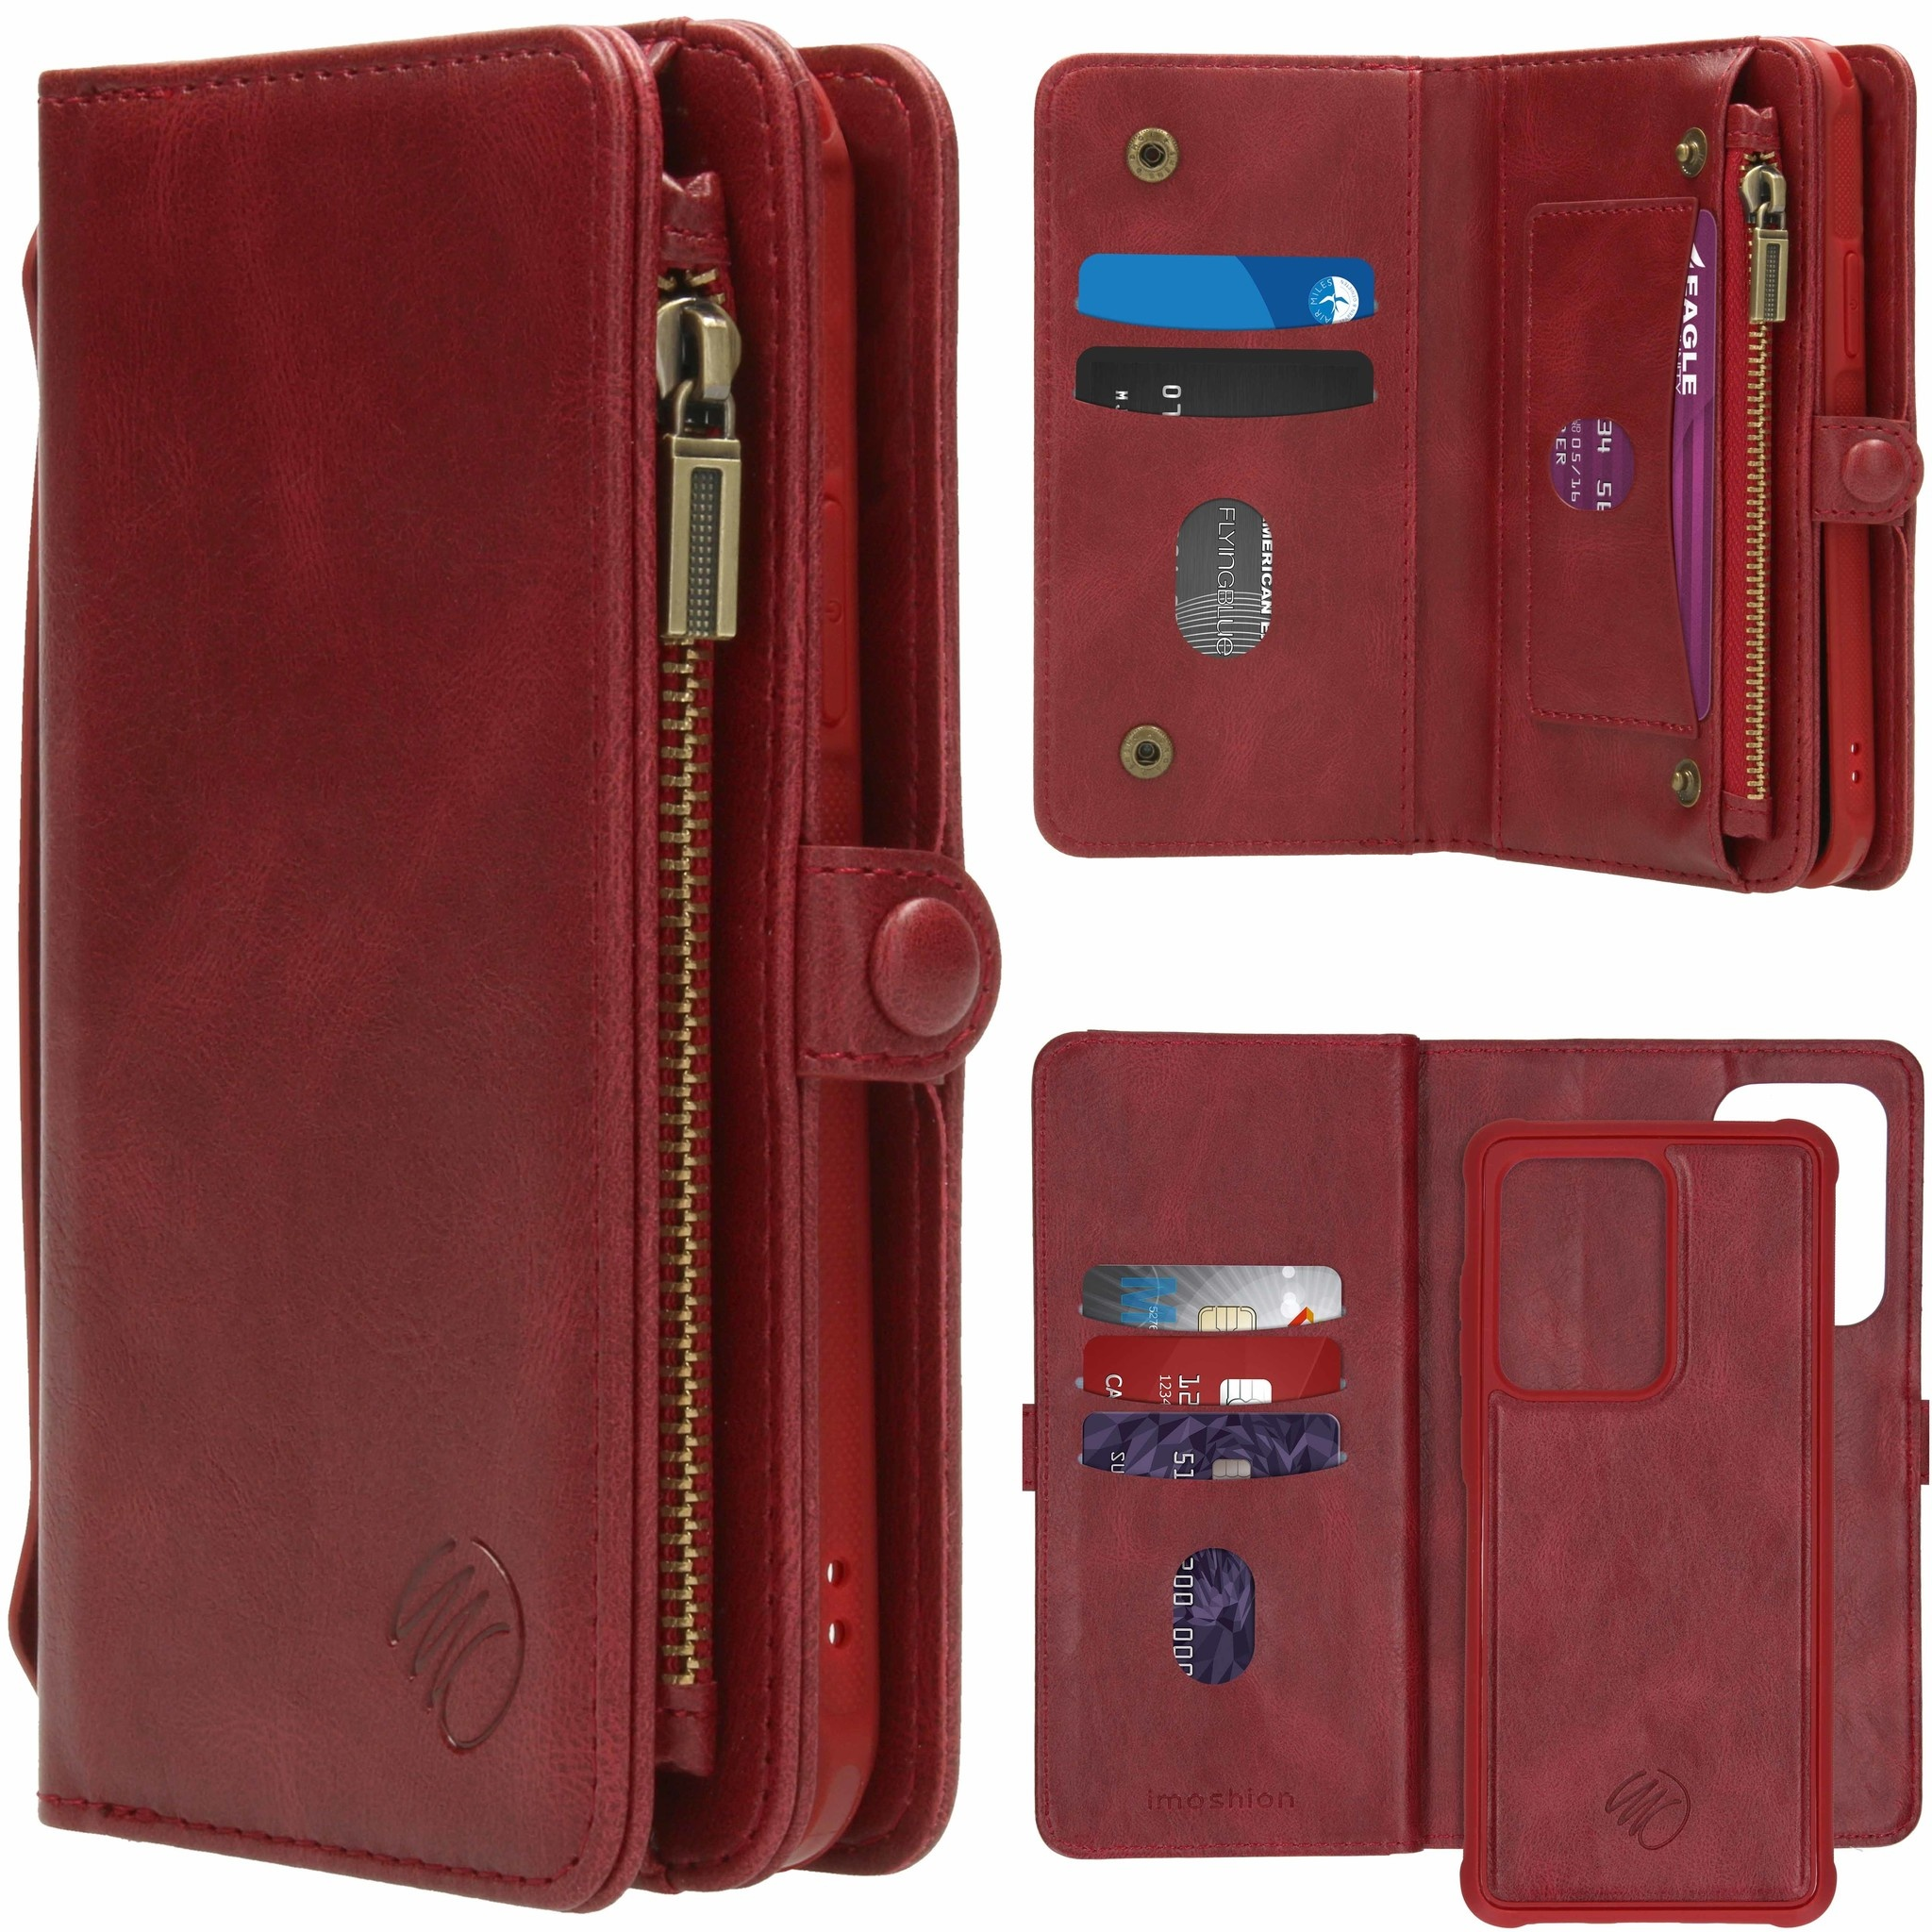 iMoshion 2-in-1 Wallet Booktype Samsung Galaxy S20 Ultra - Rood